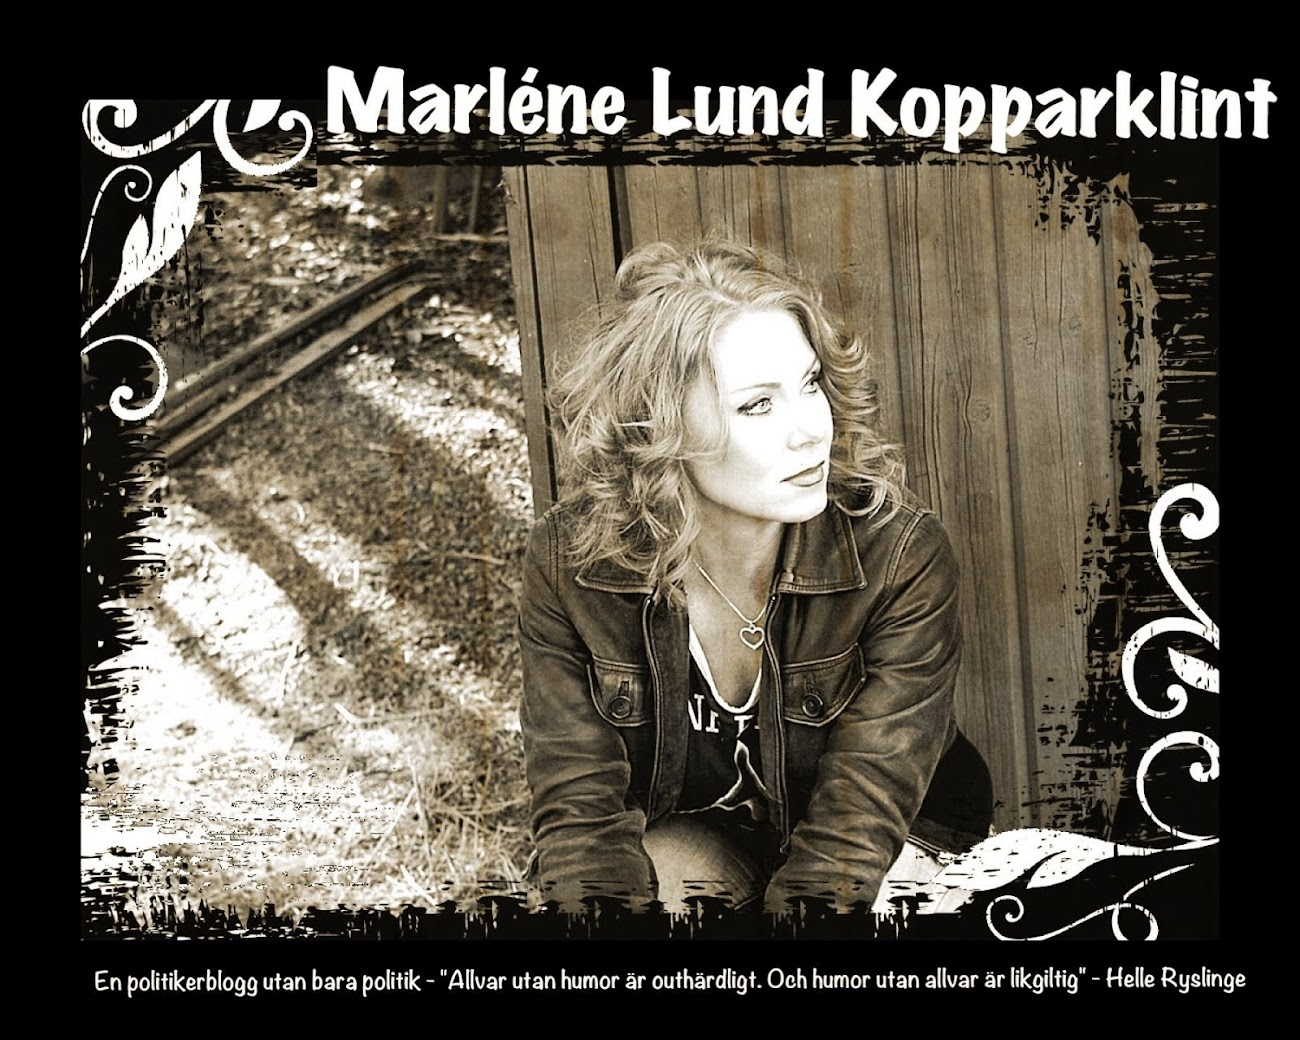 Marlne L Kopparklints blogg!